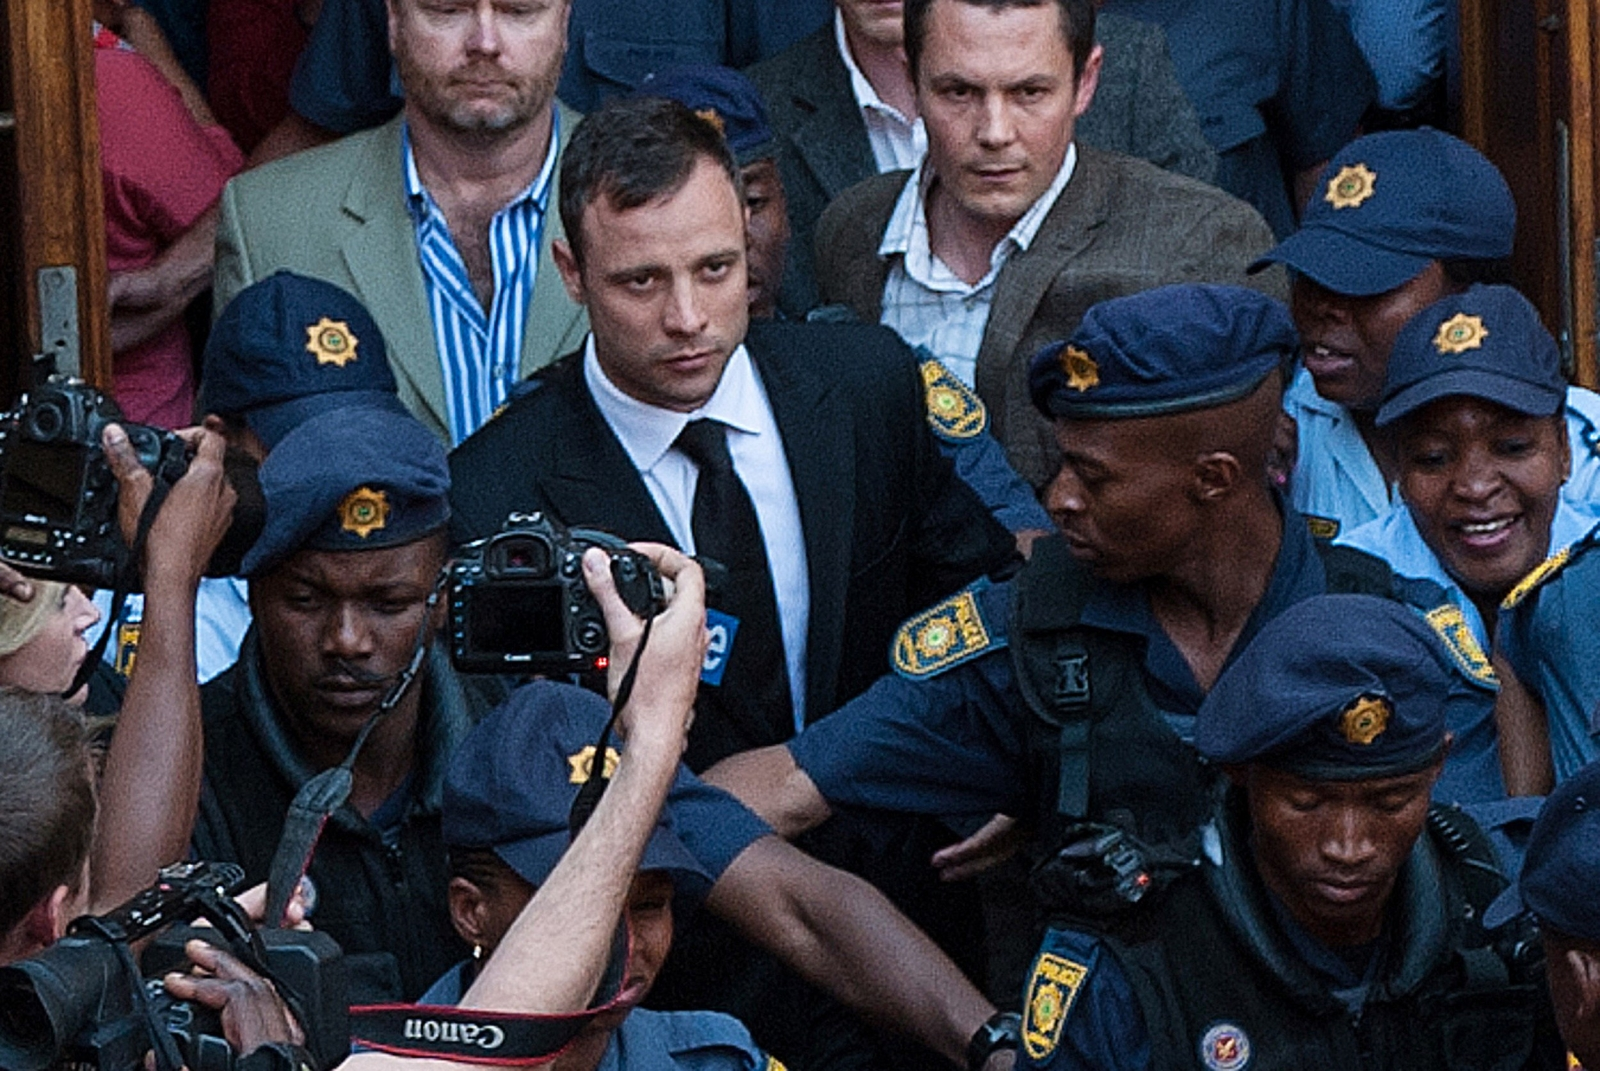 Pistorius is led out of court following the delivery of the manslaughter verdict last week. (Getty)